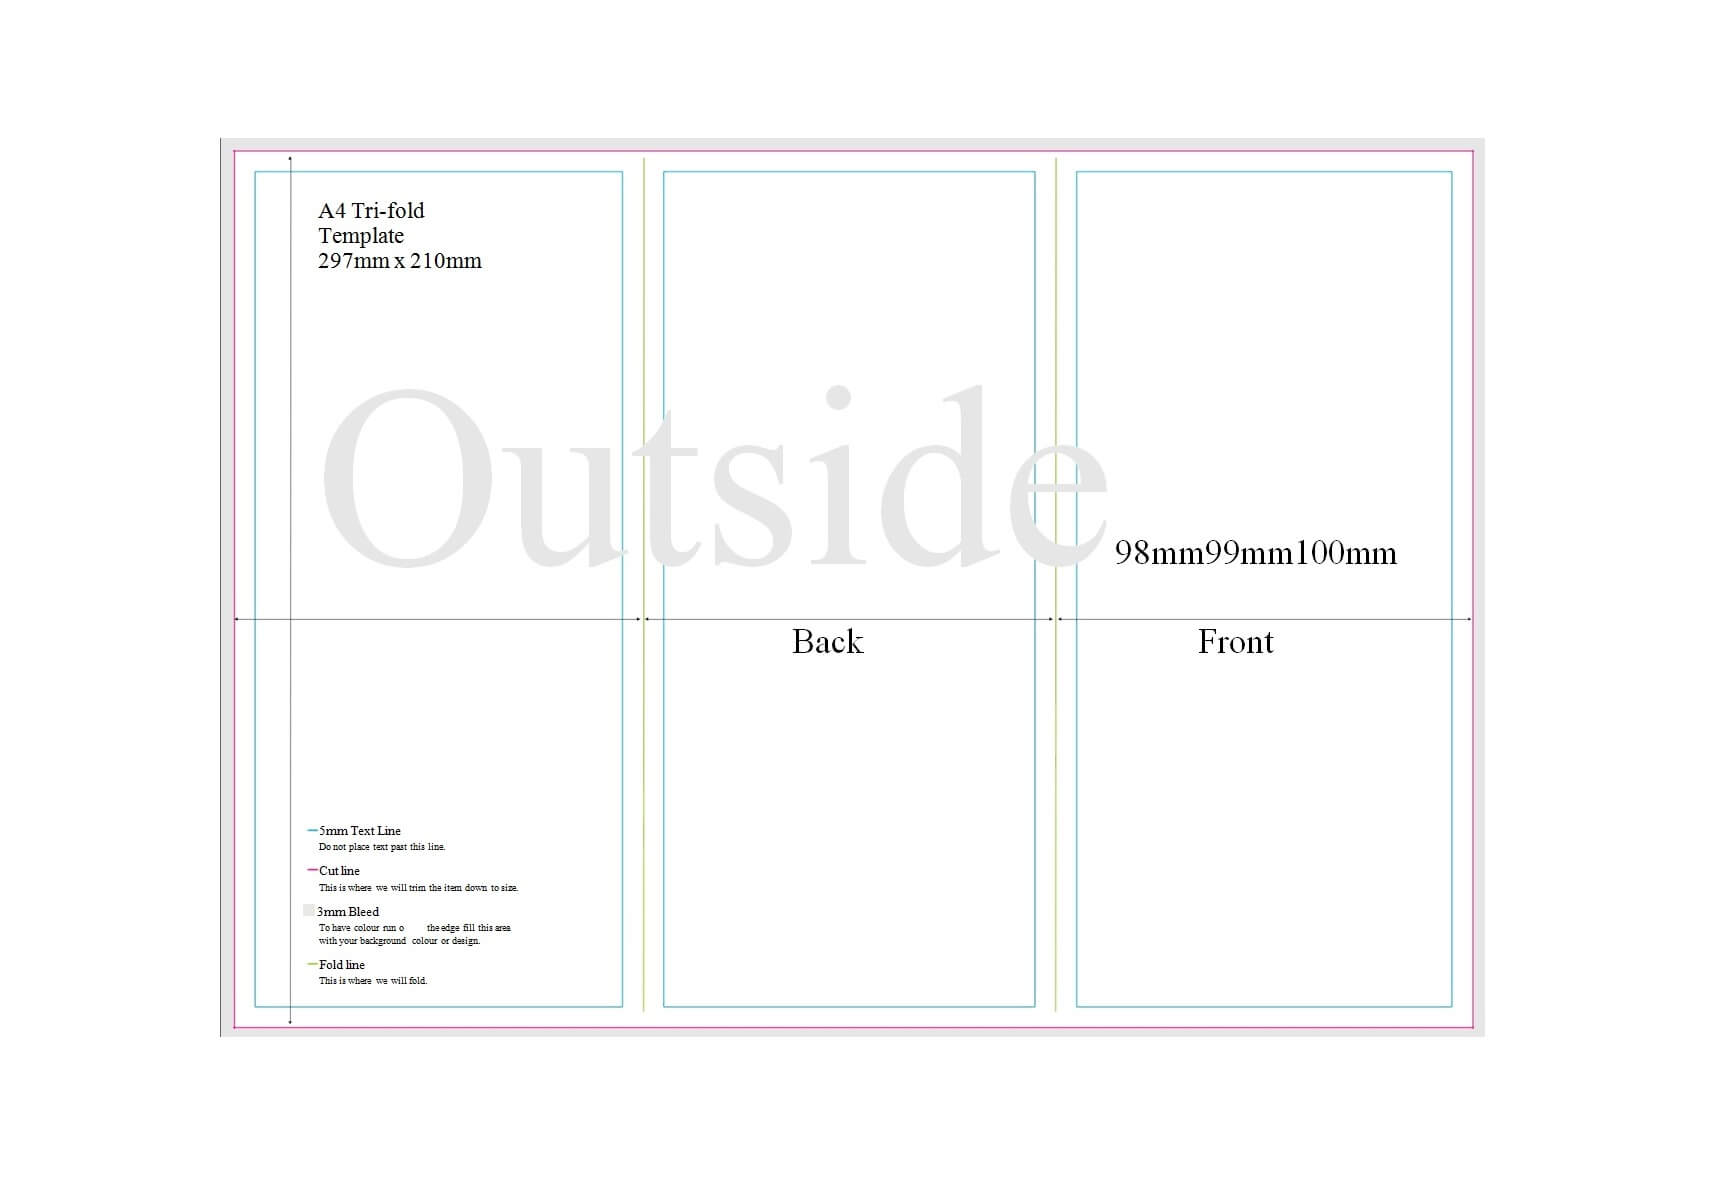 50 Free Pamphlet Templates [Word / Google Docs] ᐅ Template Lab within Brochure Templates Google Drive